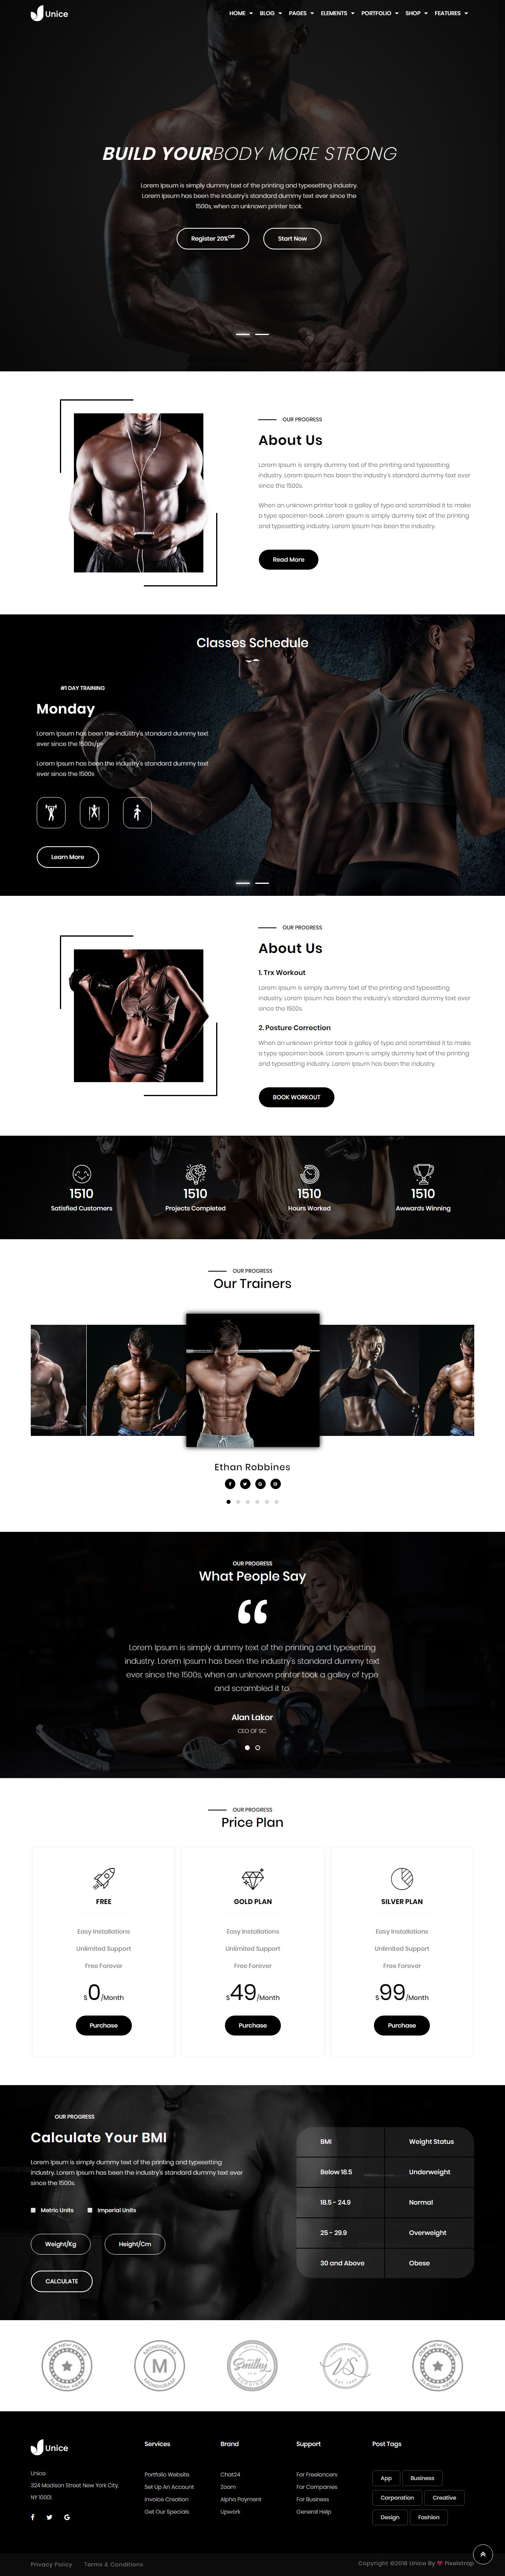 15 best html5 gym and fitness template 2020